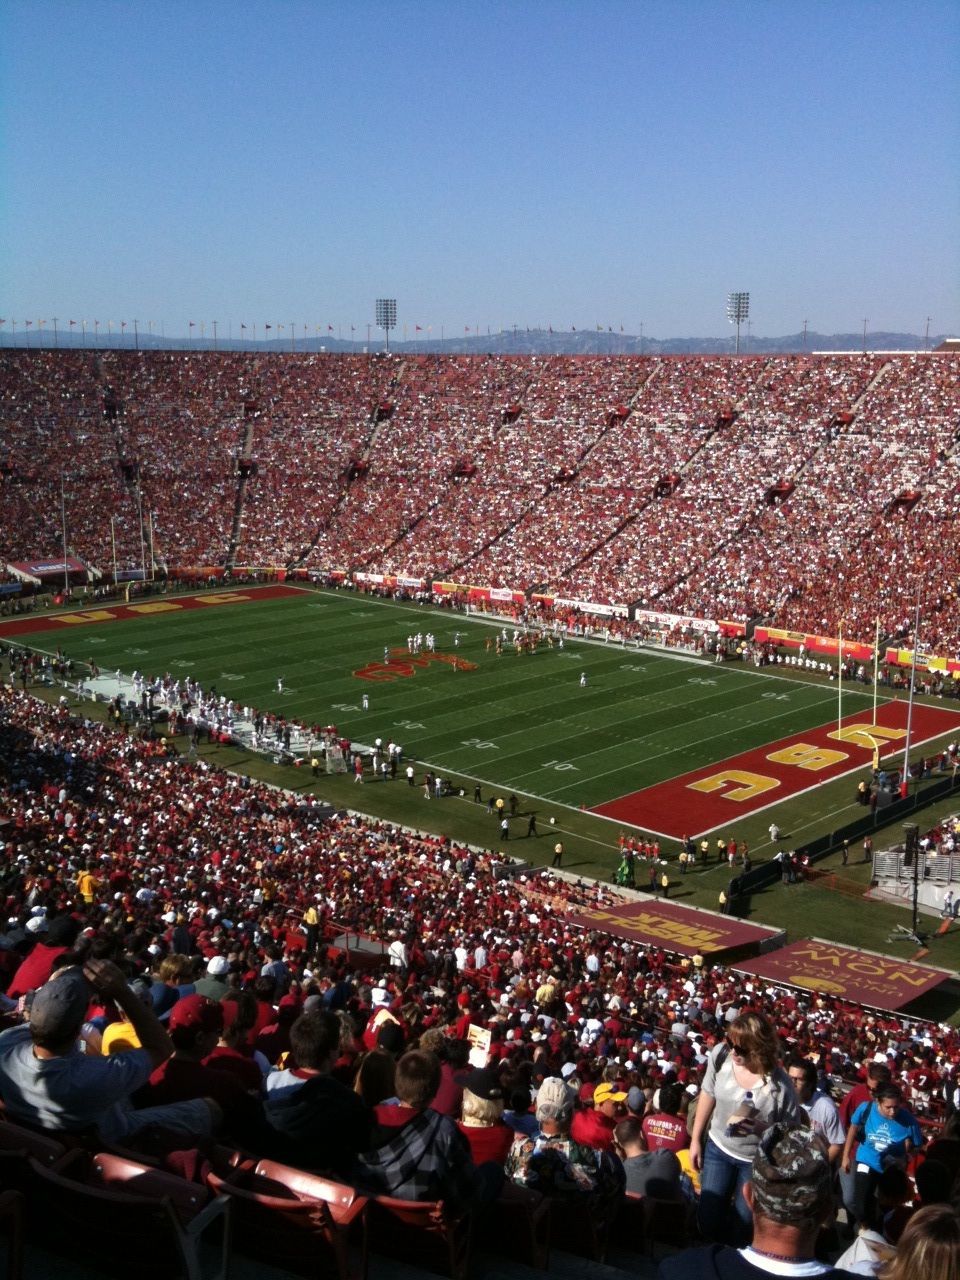 Usc Football Los Angeles Memorial Coliseum Maybe We Ll Make It To A Game This Year Usc Football University Of Southern California Usc Trojans